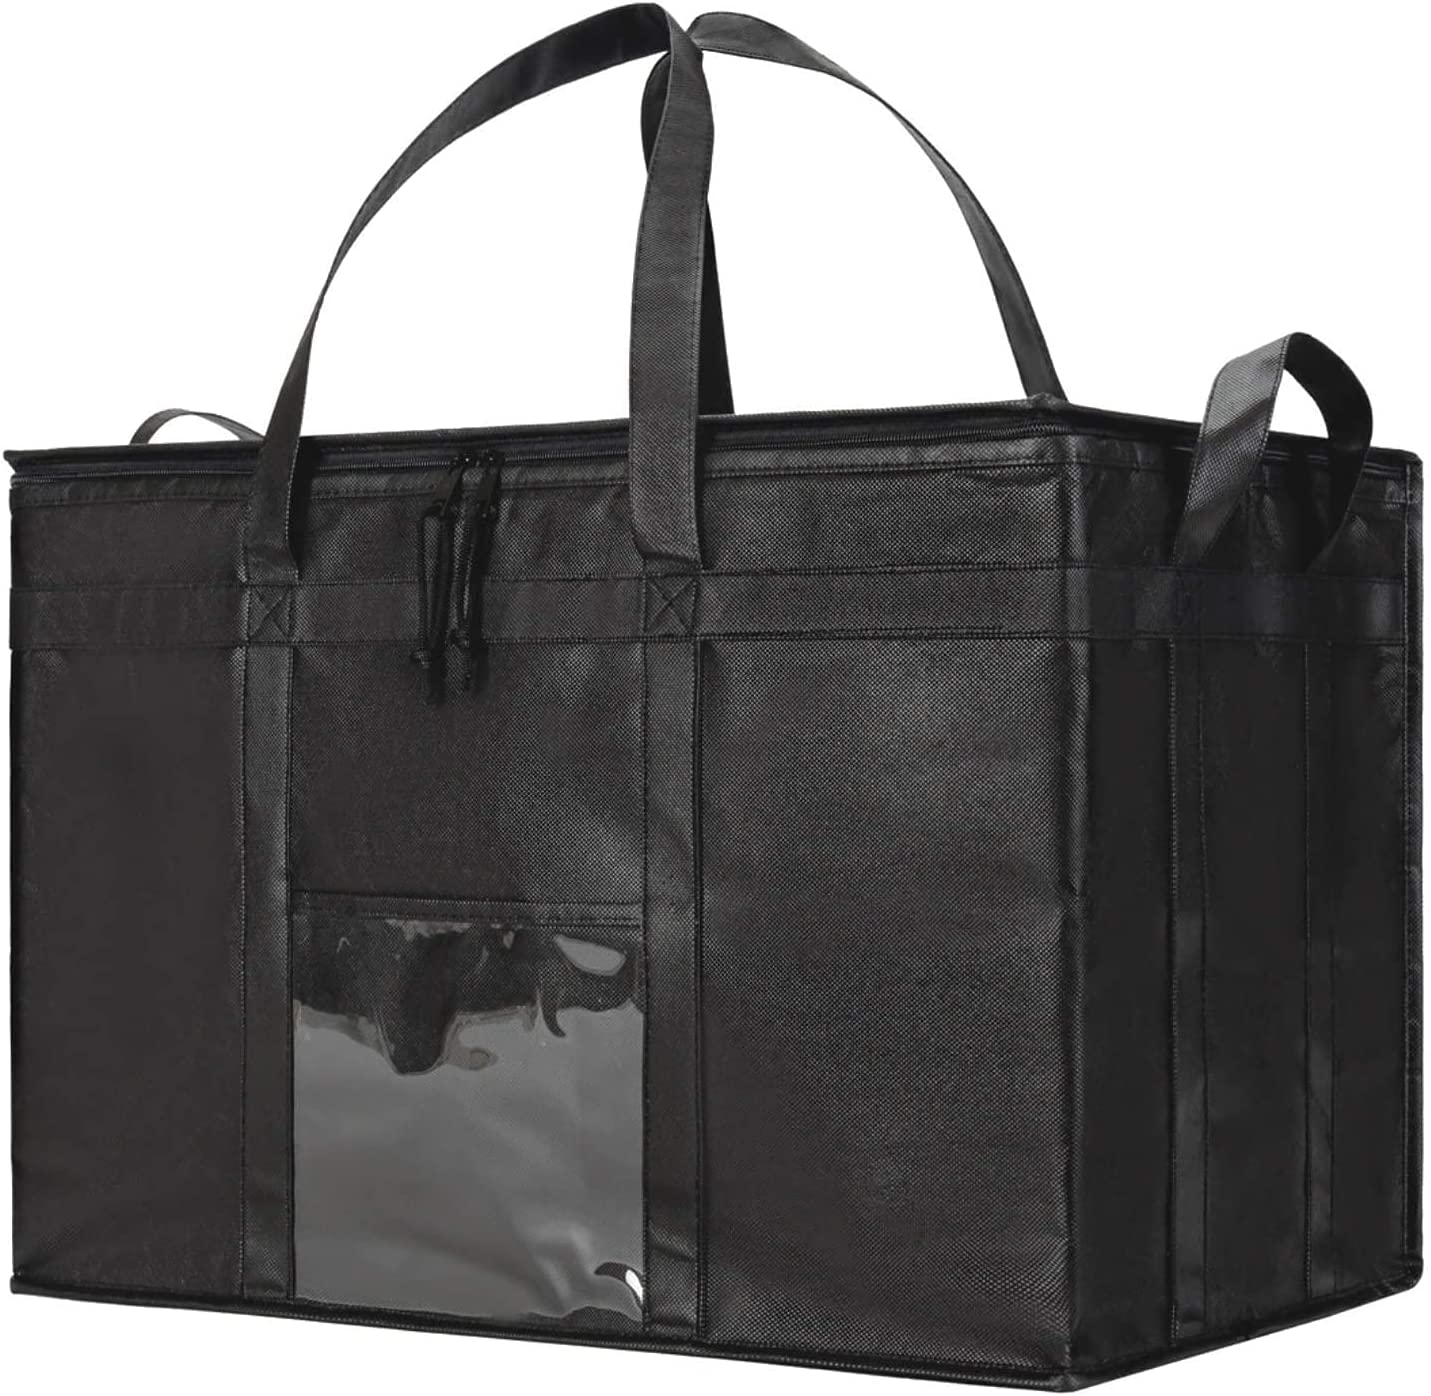 Food Delivery Cash special price Bag Reusable OFFicial shop Shopping Foldaway Bags Ice Large